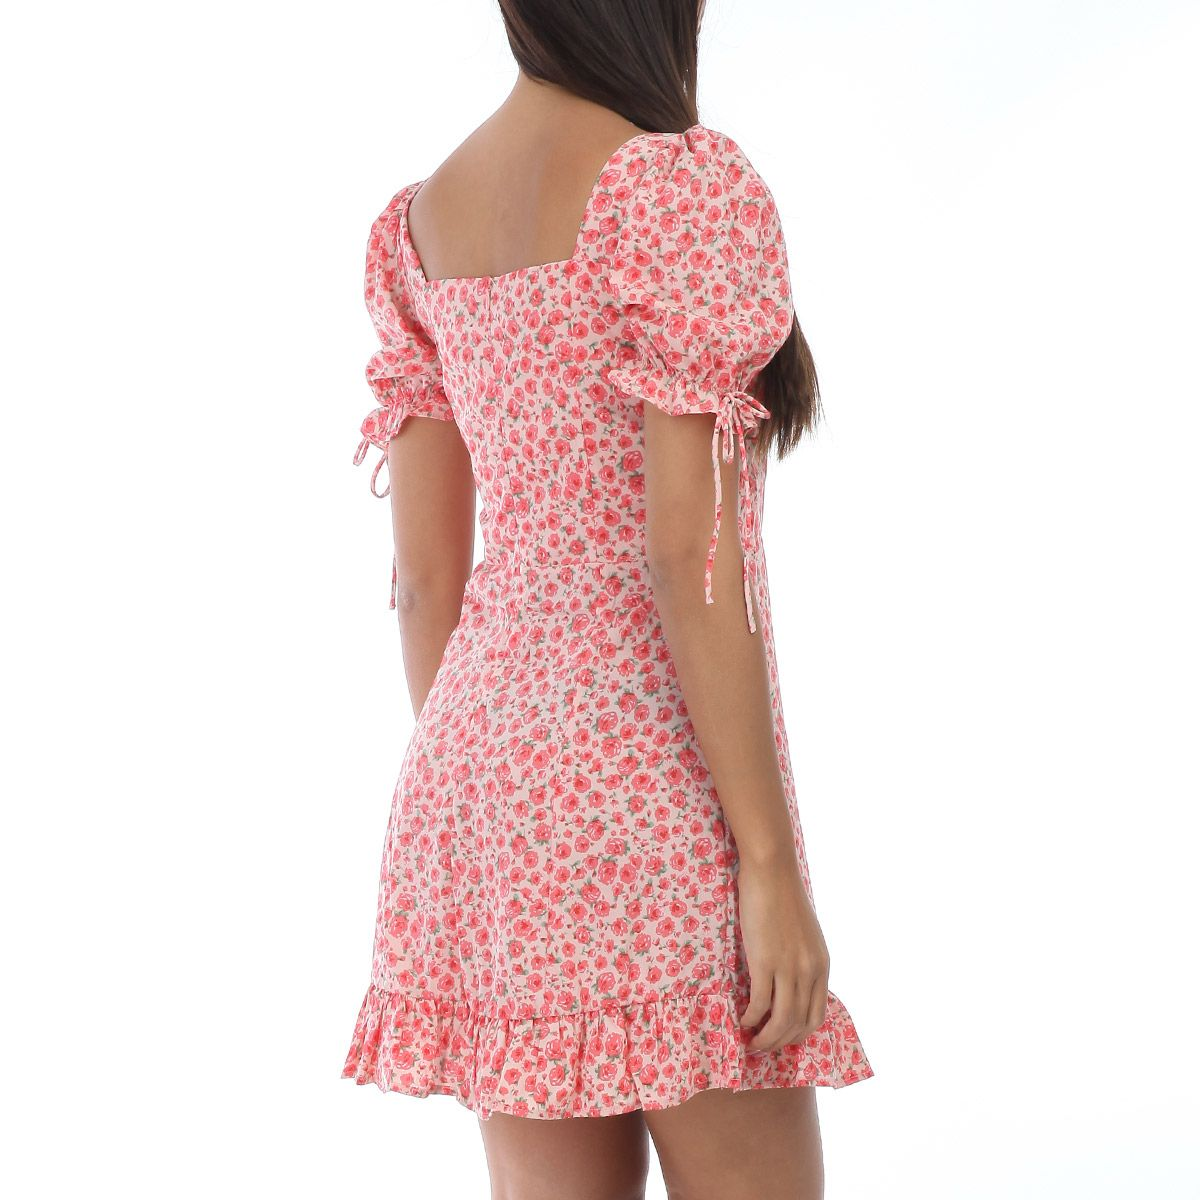 Robe patineuse taupe à fleurs roses